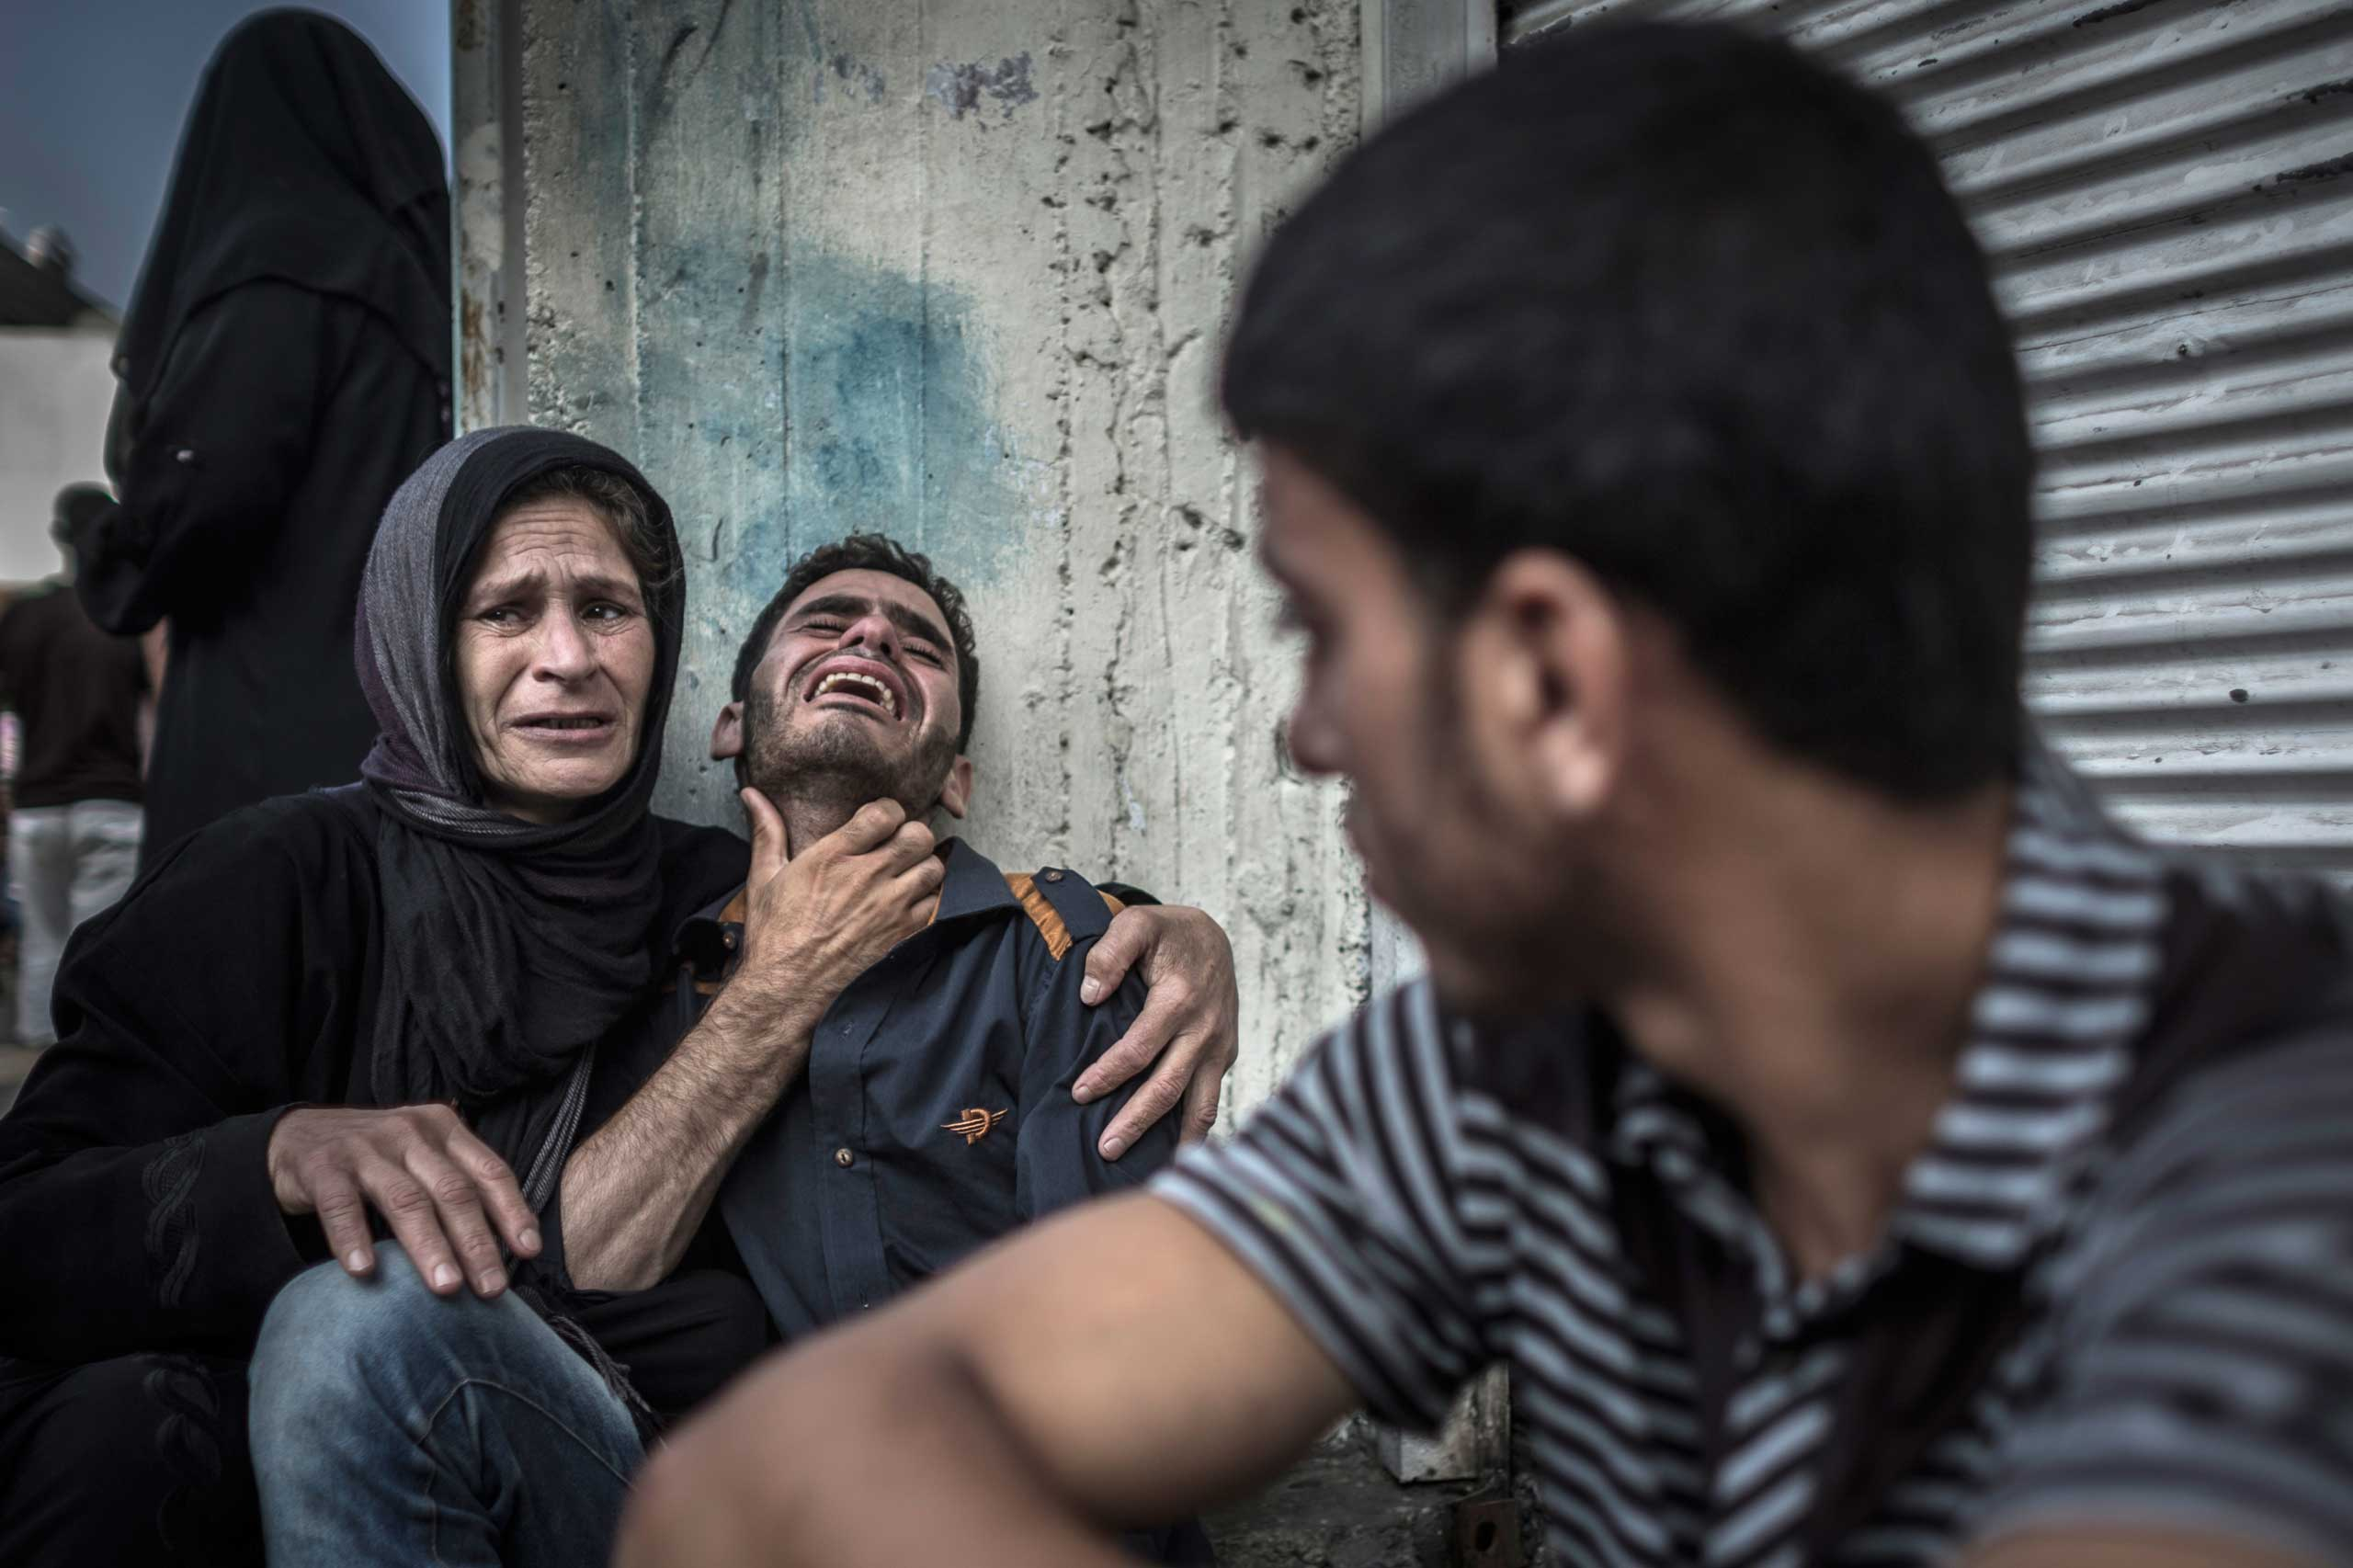 Palestinians mourn the death of a relative who died when a U.N. school used as a shelter for internally displaced people came under Israeli shelling in the Kamal Adwan hospital in Beit Lahiya, northern Gaza Strip, July 30, 2014.